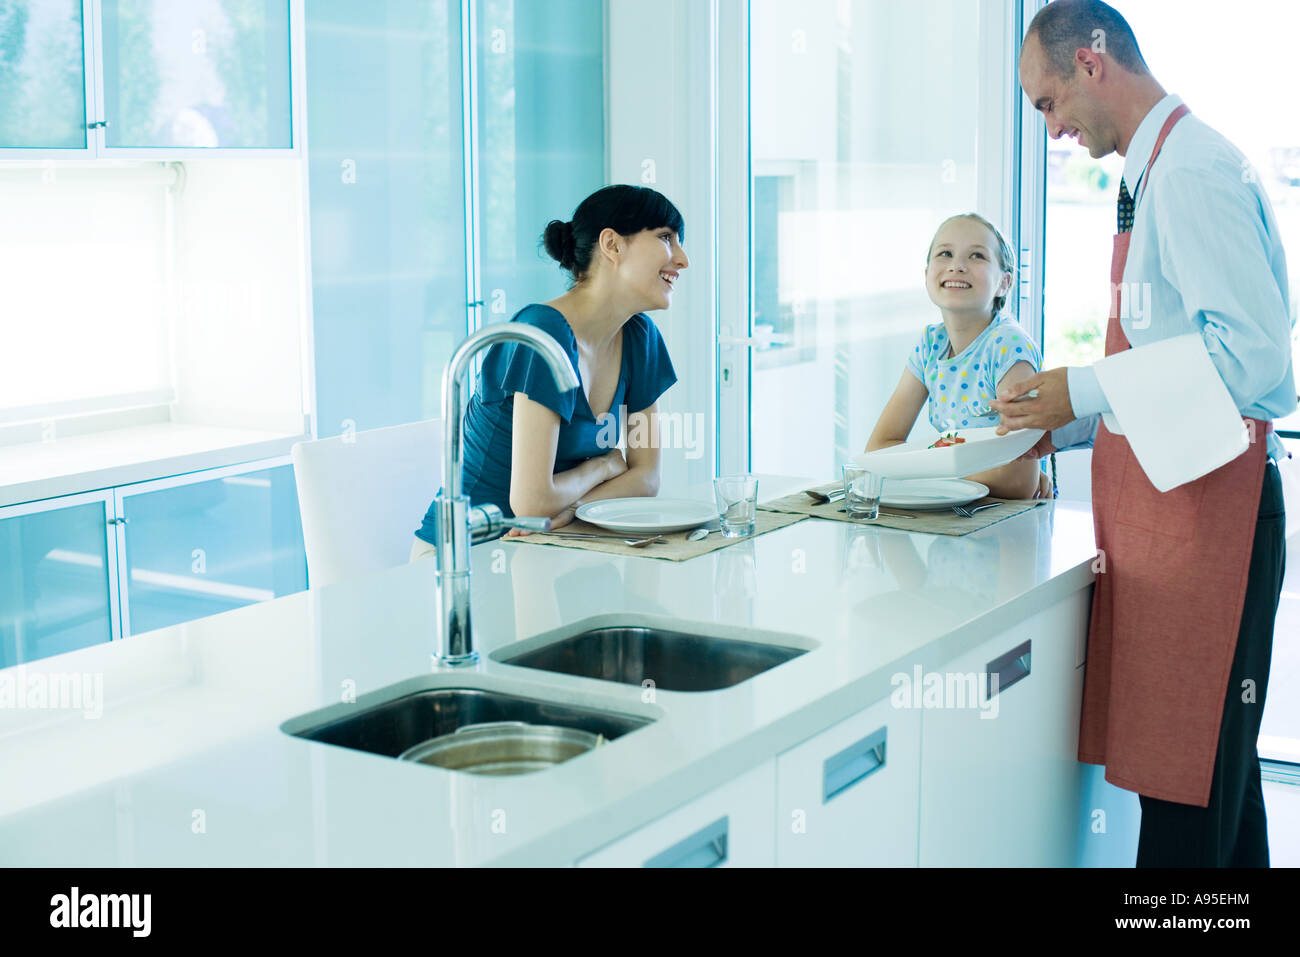 Man serving woman and girl in kitchen Stock Photo: 12257263 - Alamy